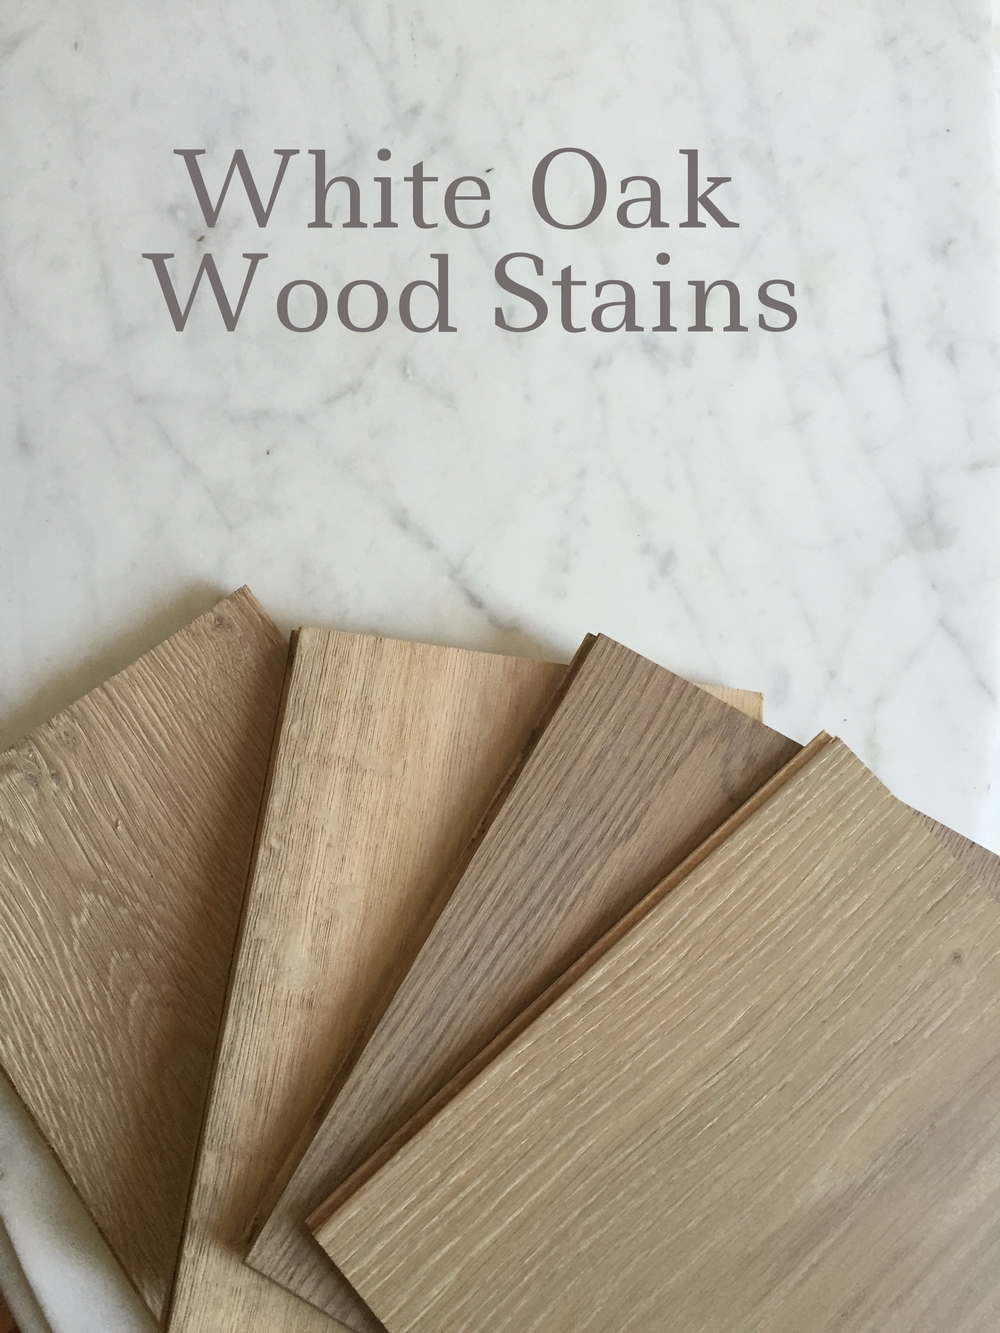 White Oak Wood Stain for Vintage French Chairs